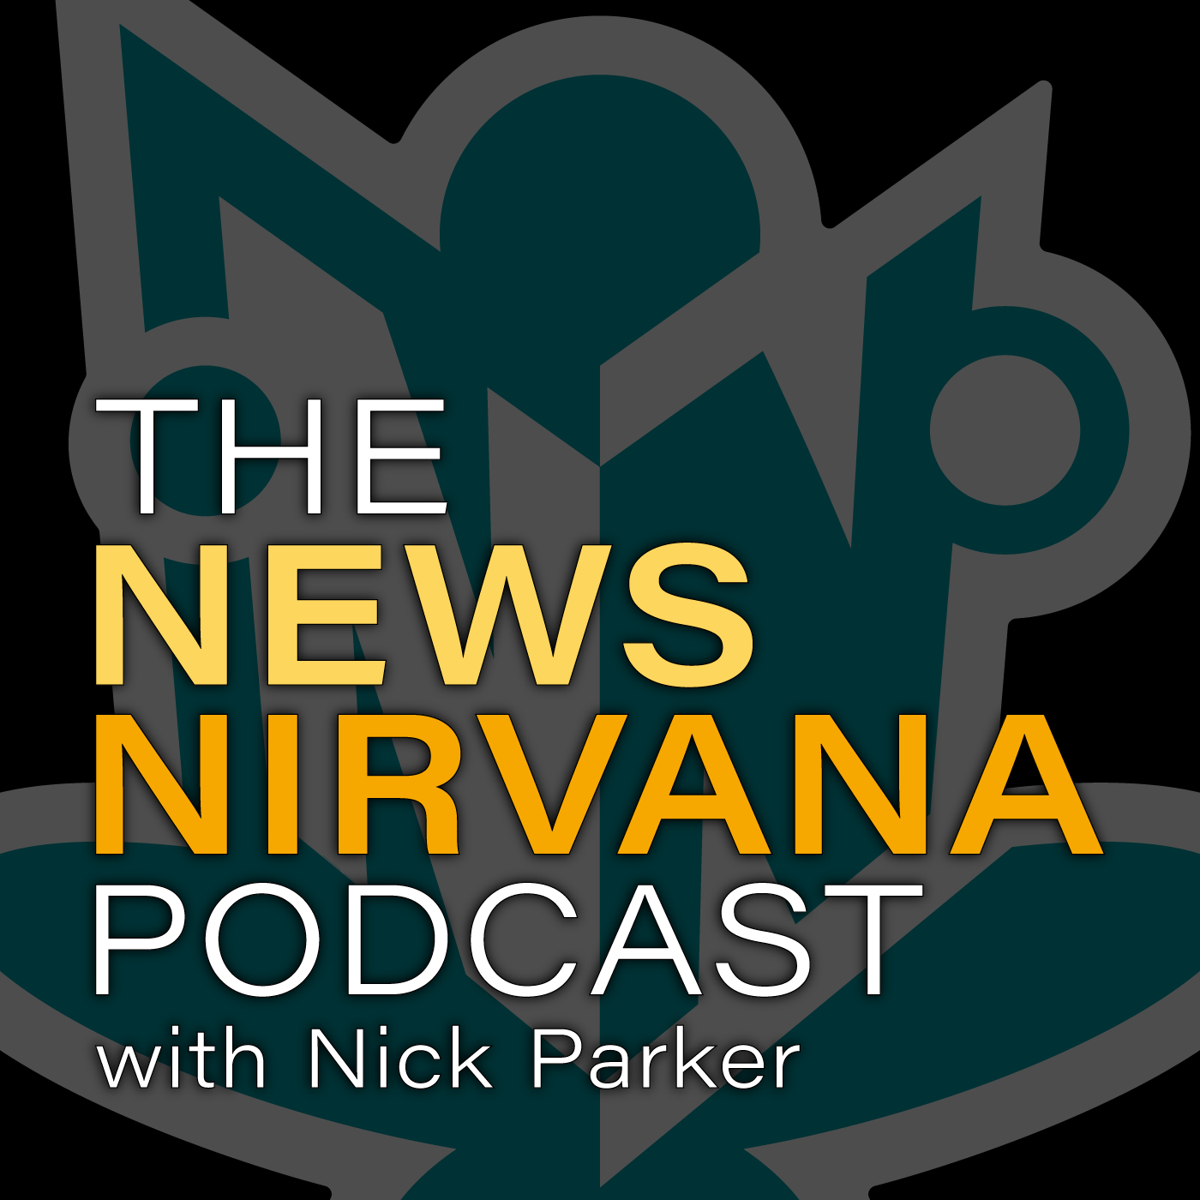 The News Nirvana Podcast with Nick Parker